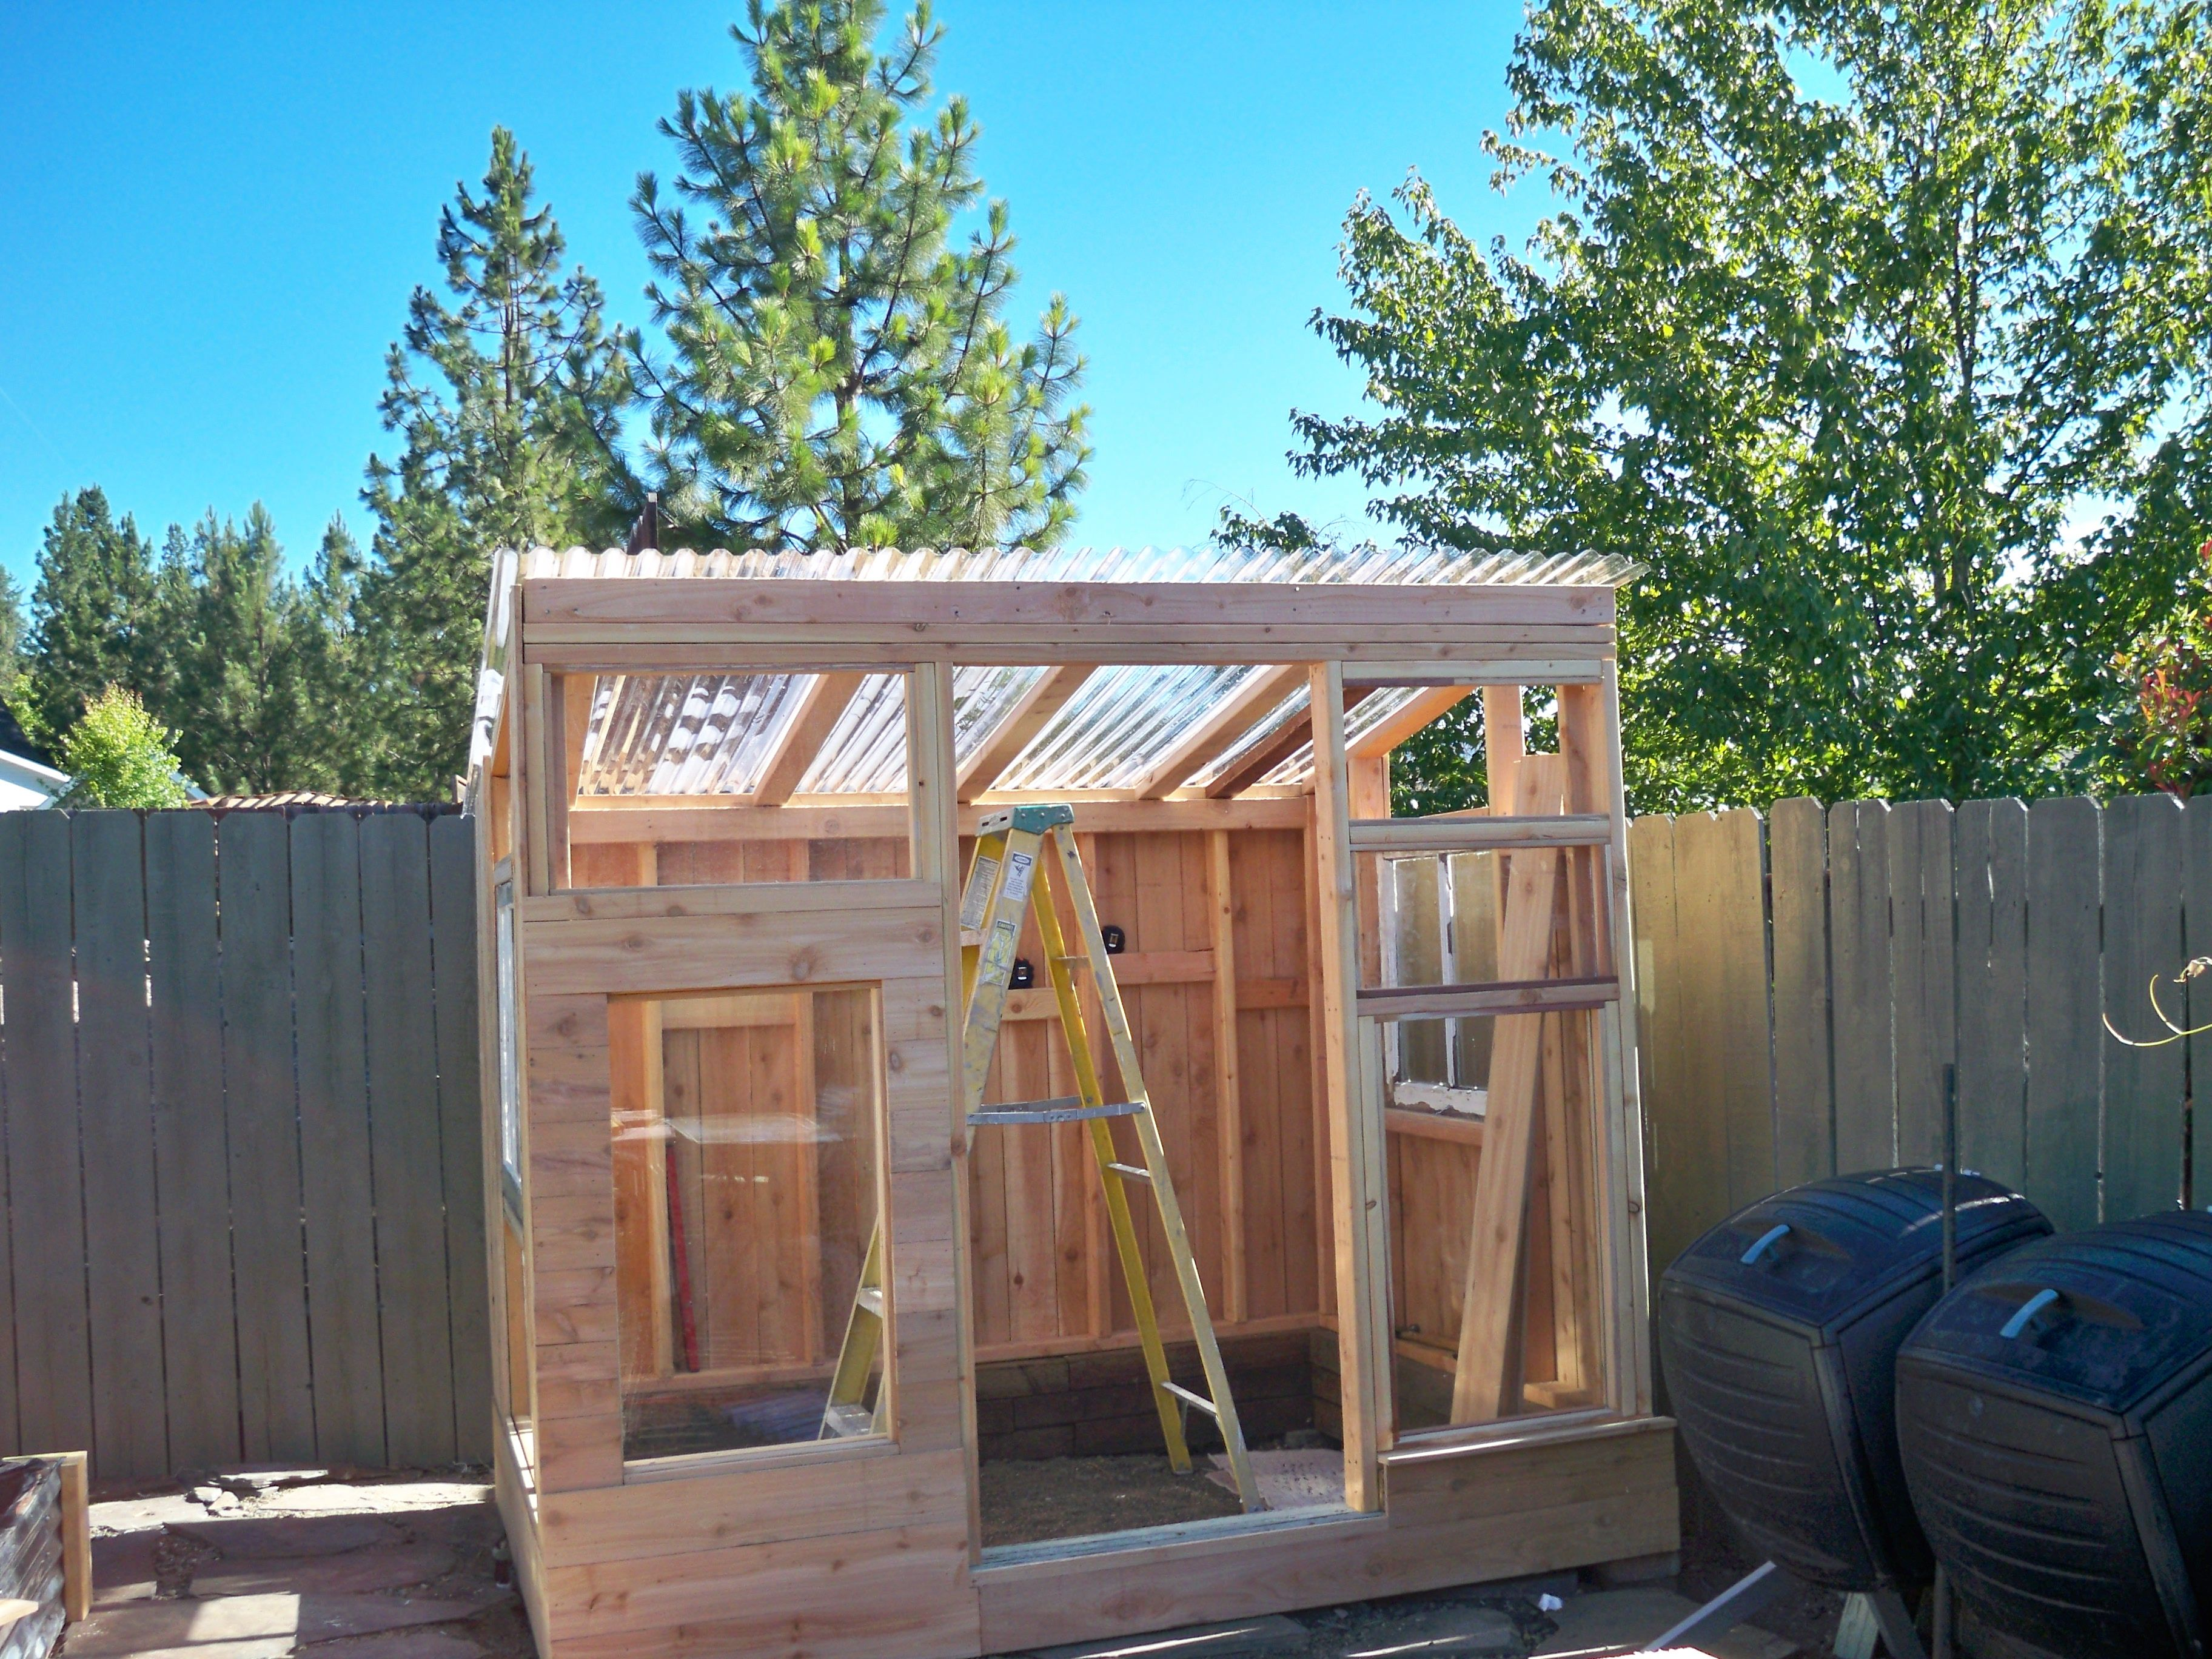 Used Inexpensive Fence Boards For Siding And Stained With Redwood